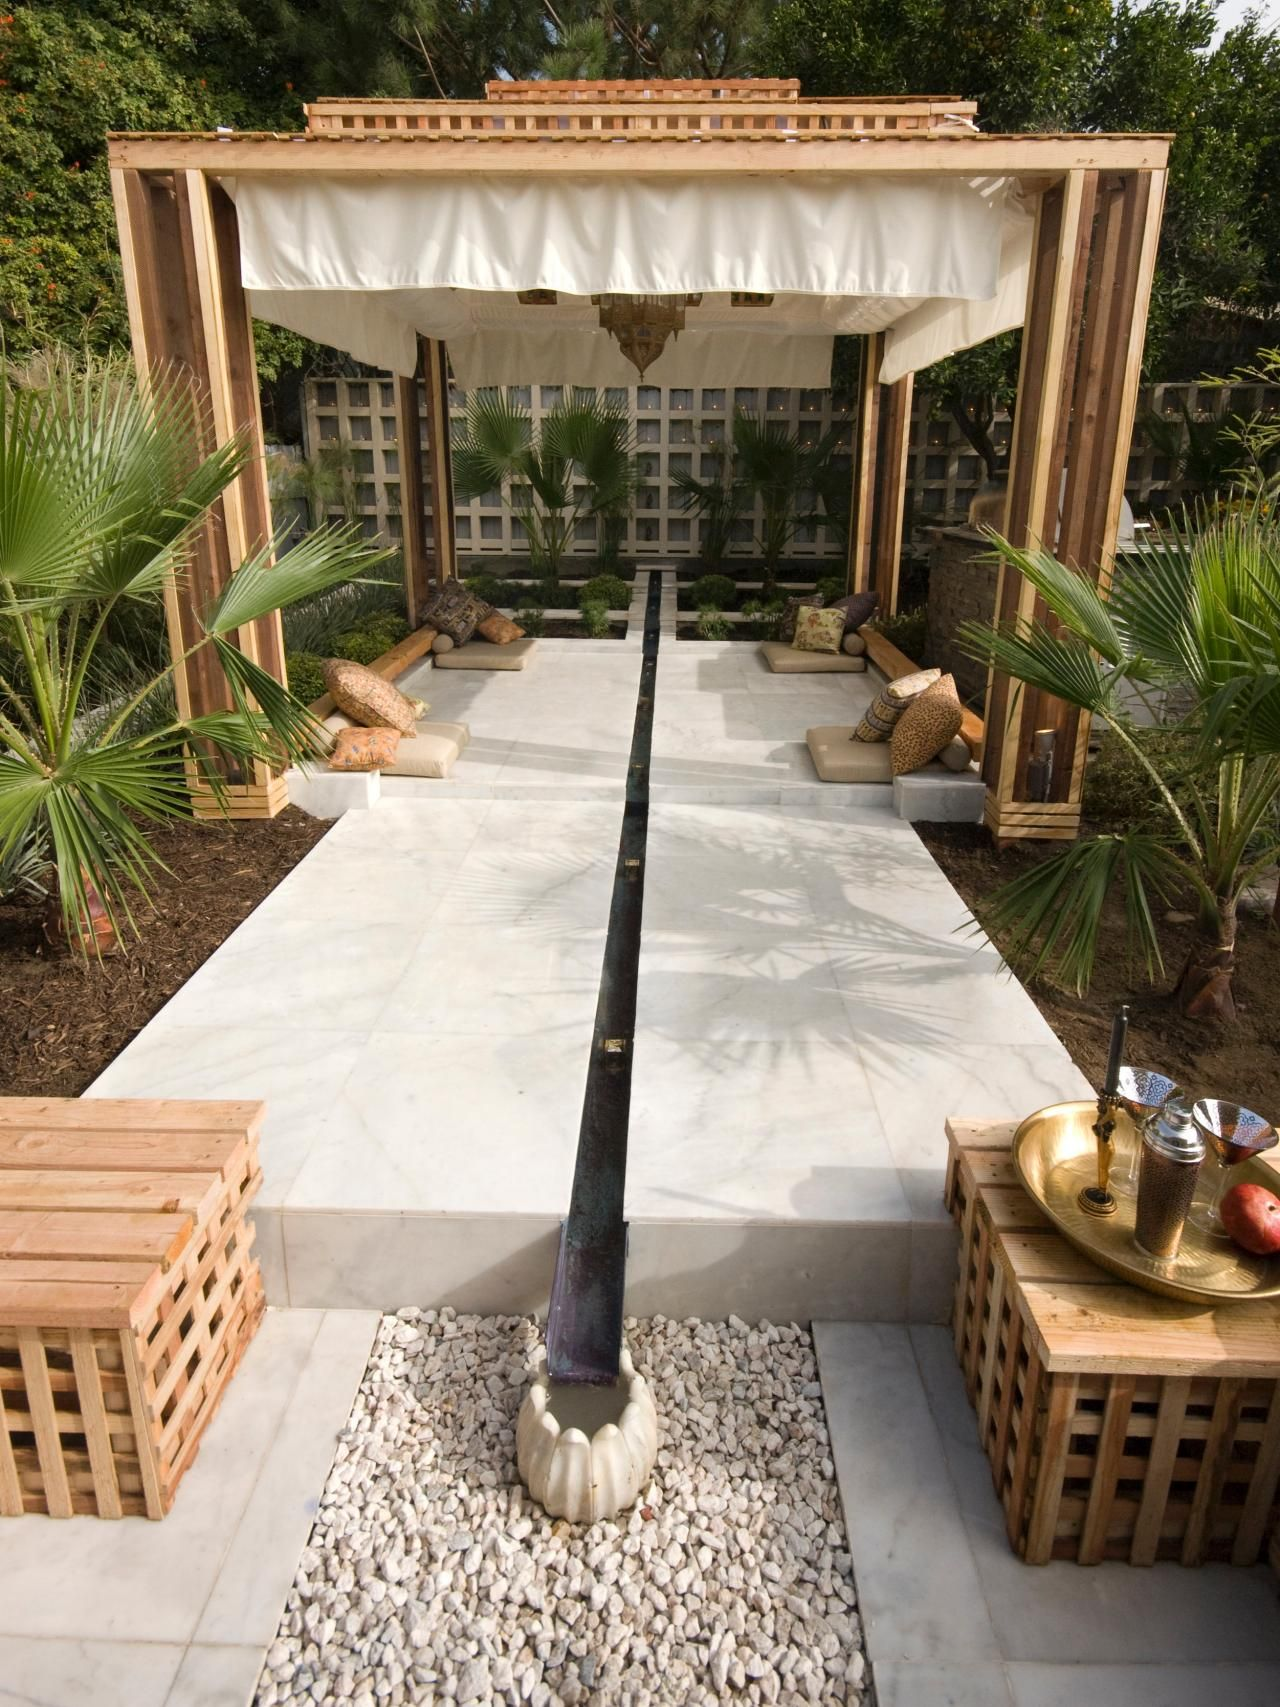 the egyptian style water feature continues across the backyard and